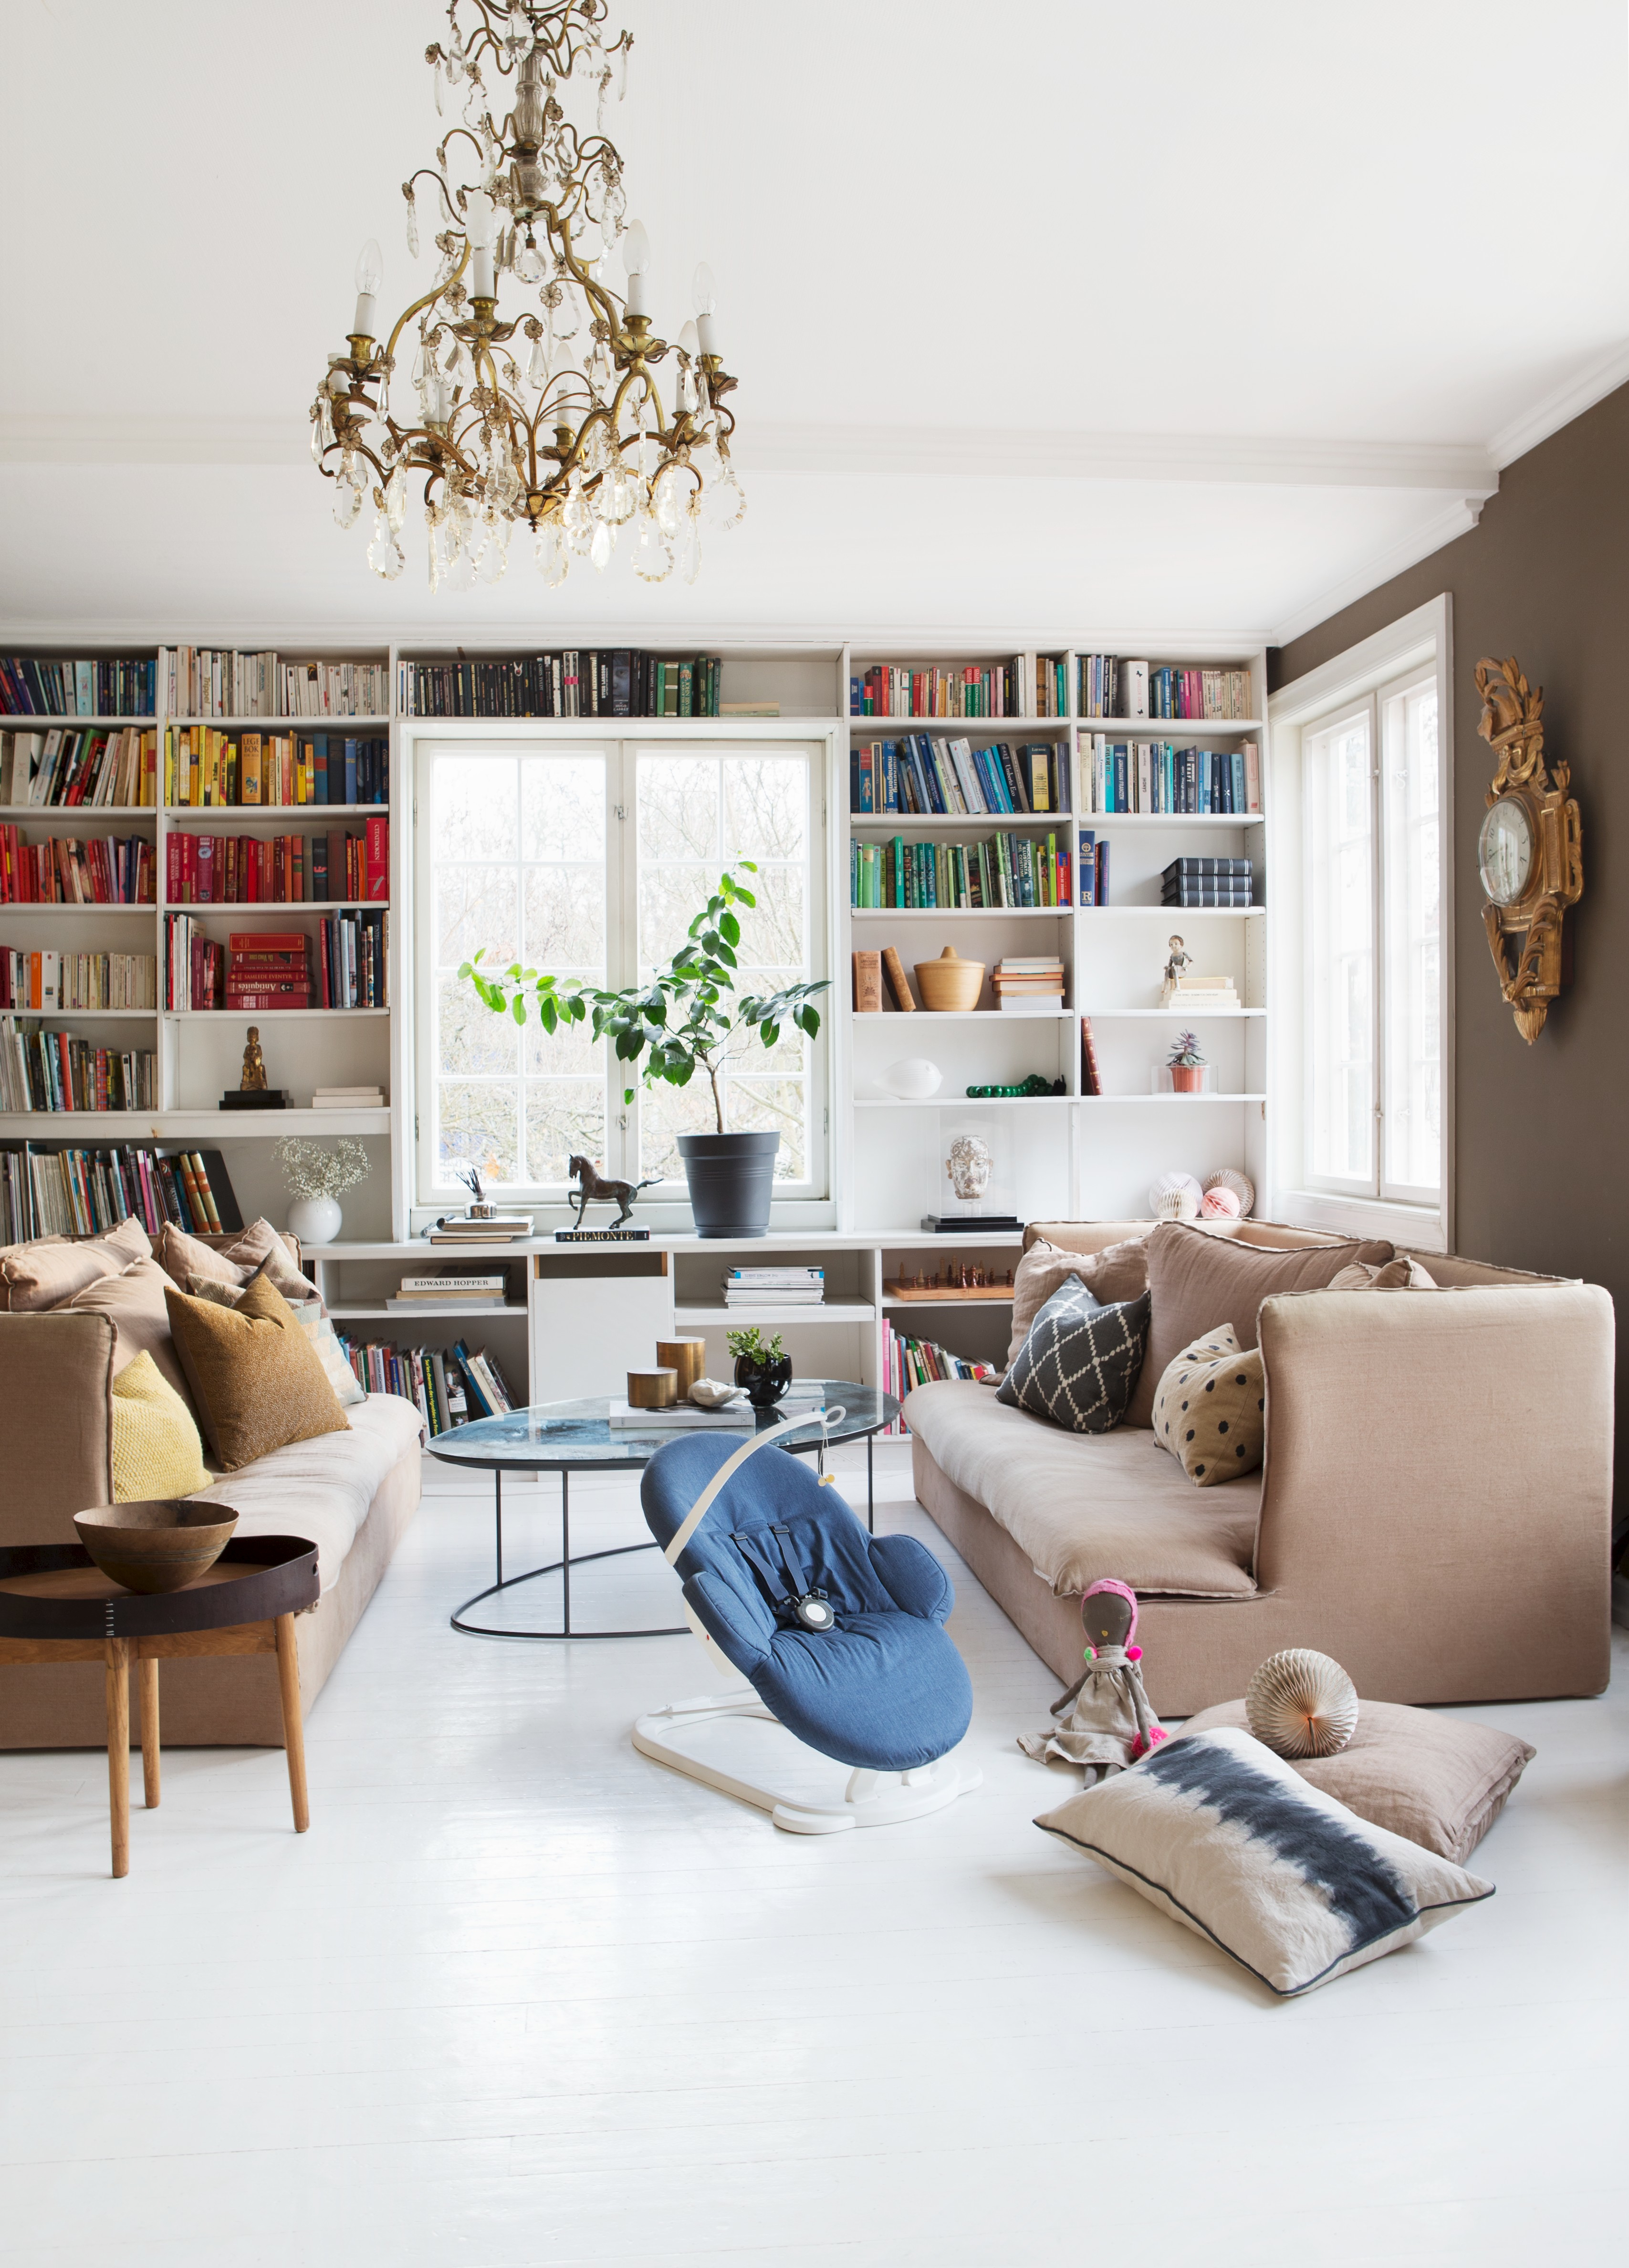 Co colour coordinated bookshelf - The Cocooning Silhouette And Sophisticated Colors Do Justice To Any Adult Interior Note Here Color Coordinated Bookshelves